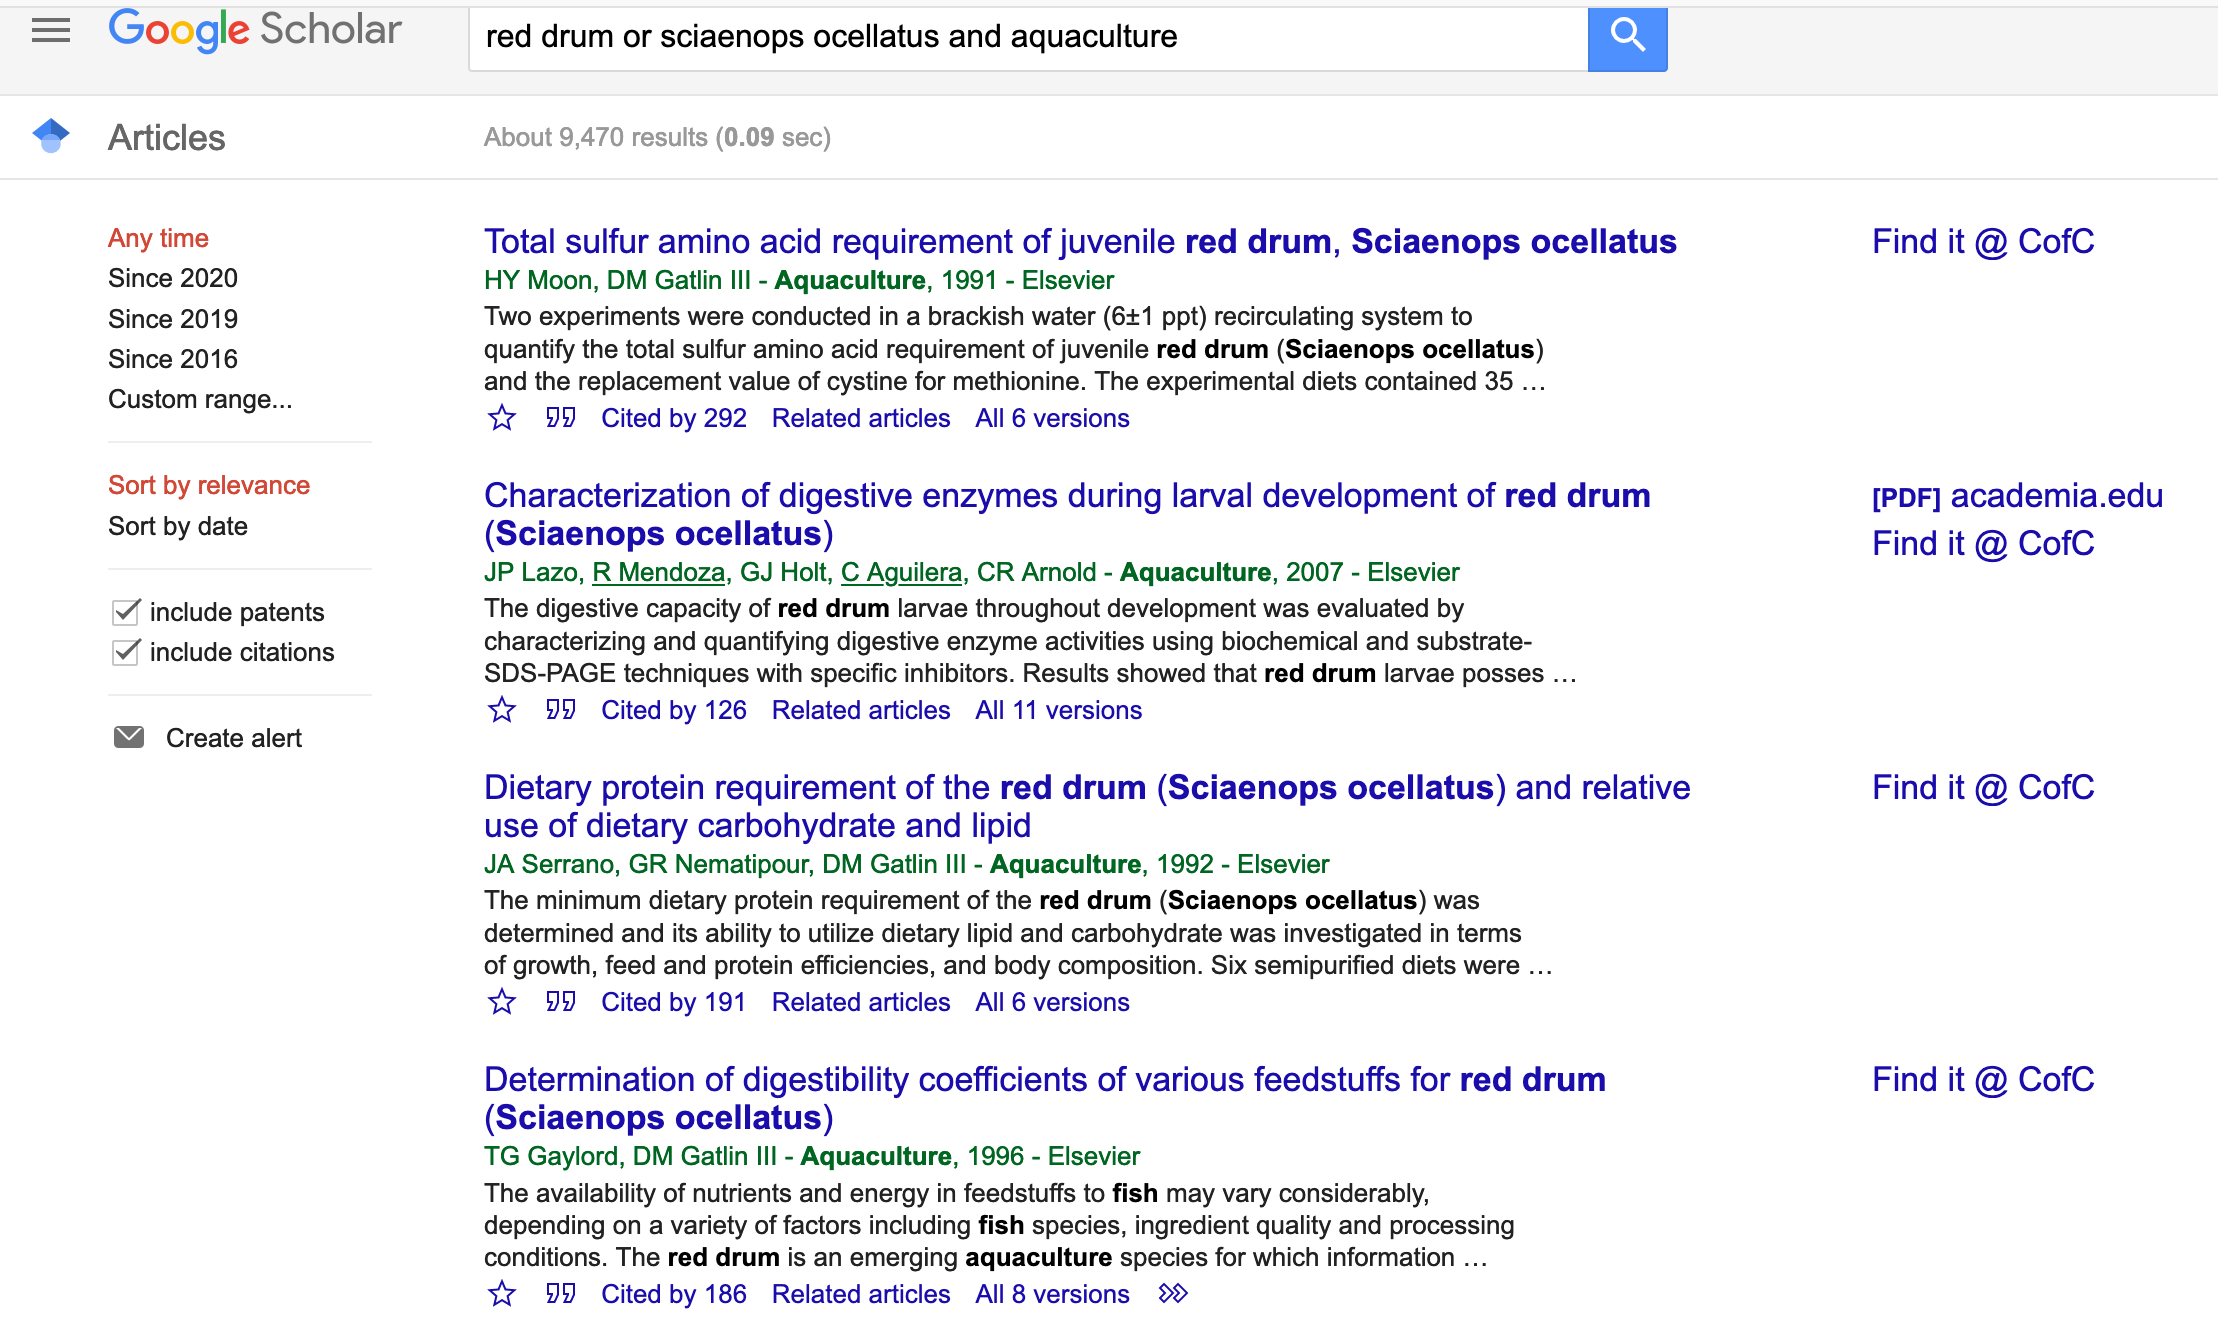 Search Google Scholar as usual